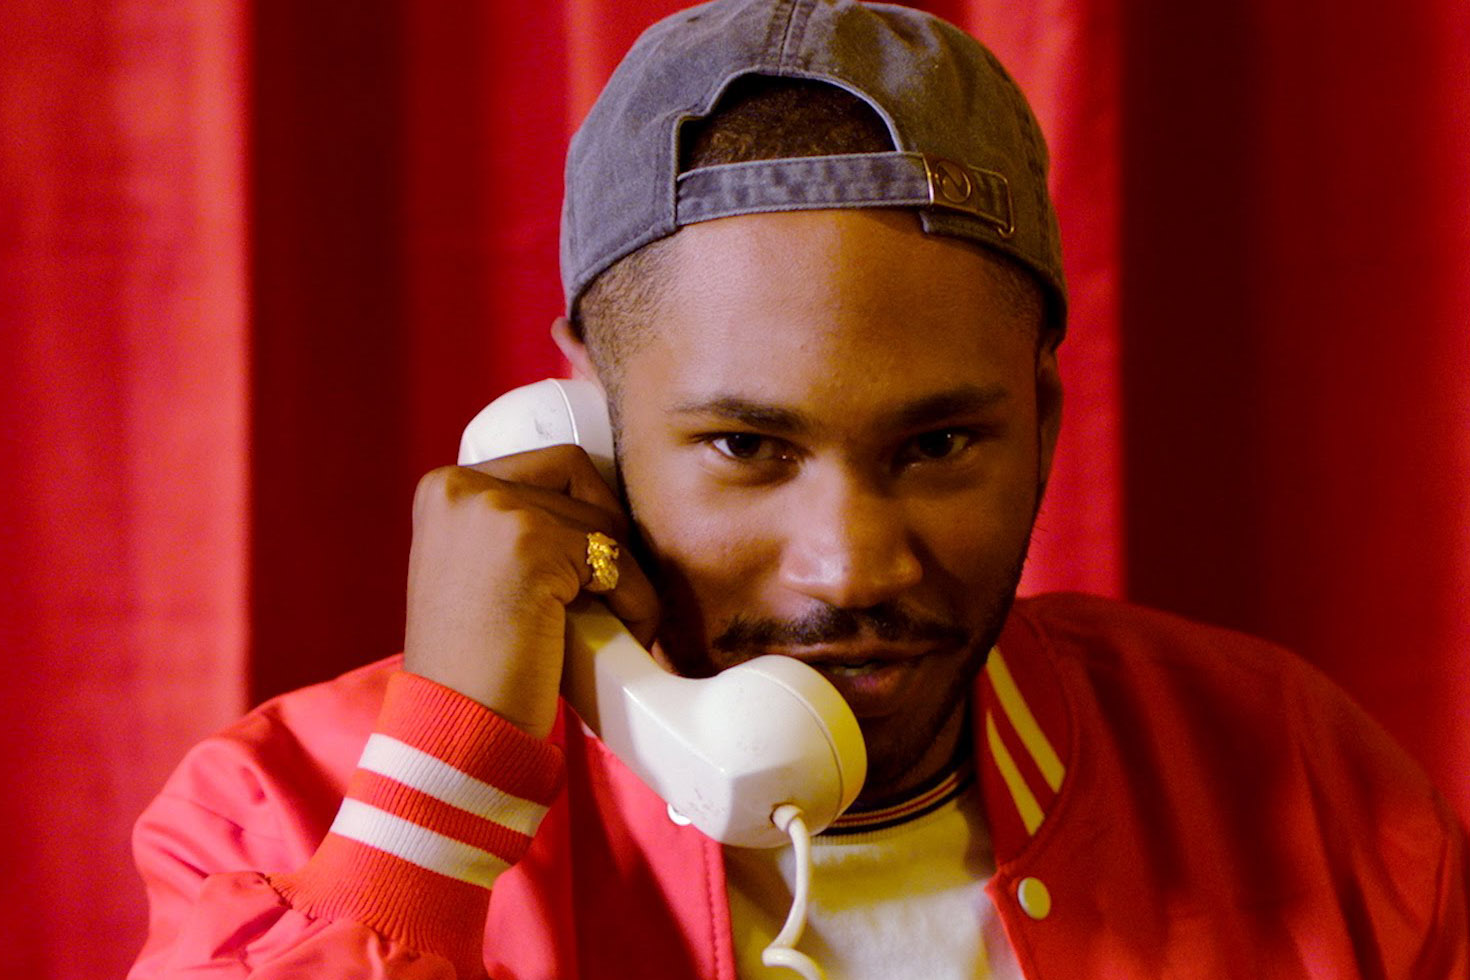 10 reasons why we'd probably consider selling a kidney if we missed out on Kaytranada tickets